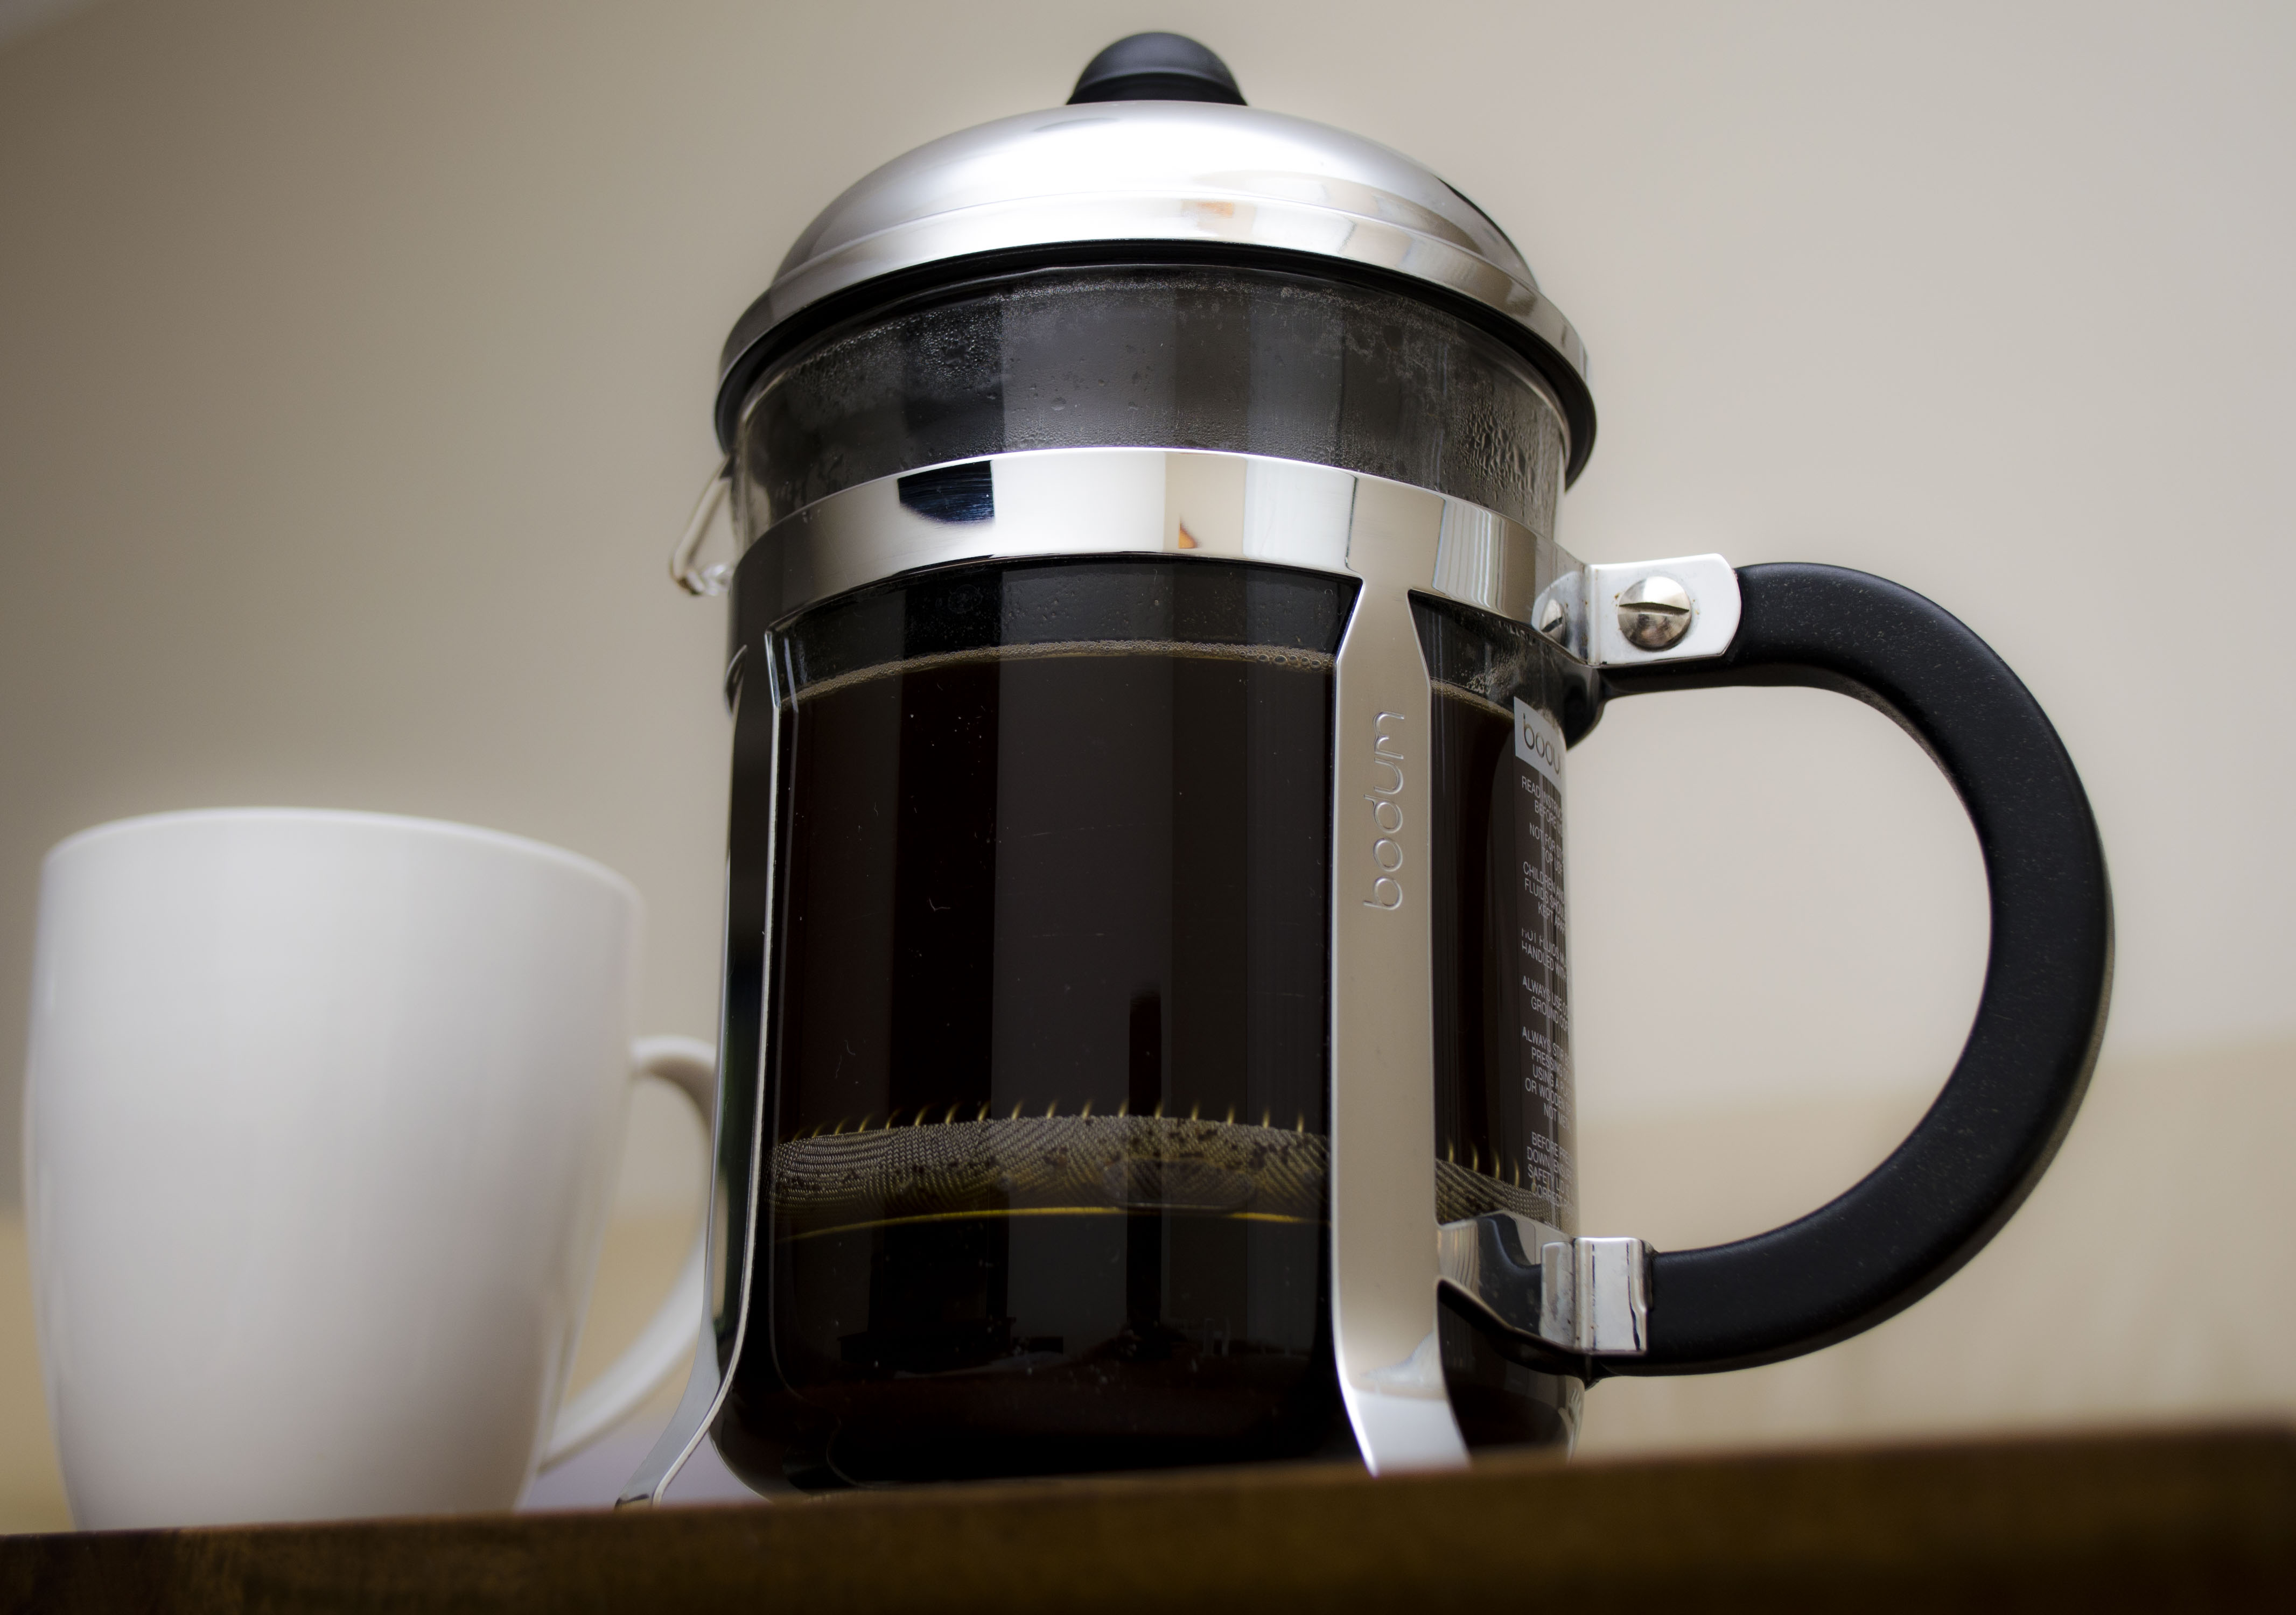 French press, coffee, pot, cup, black, drink, hot, beverage